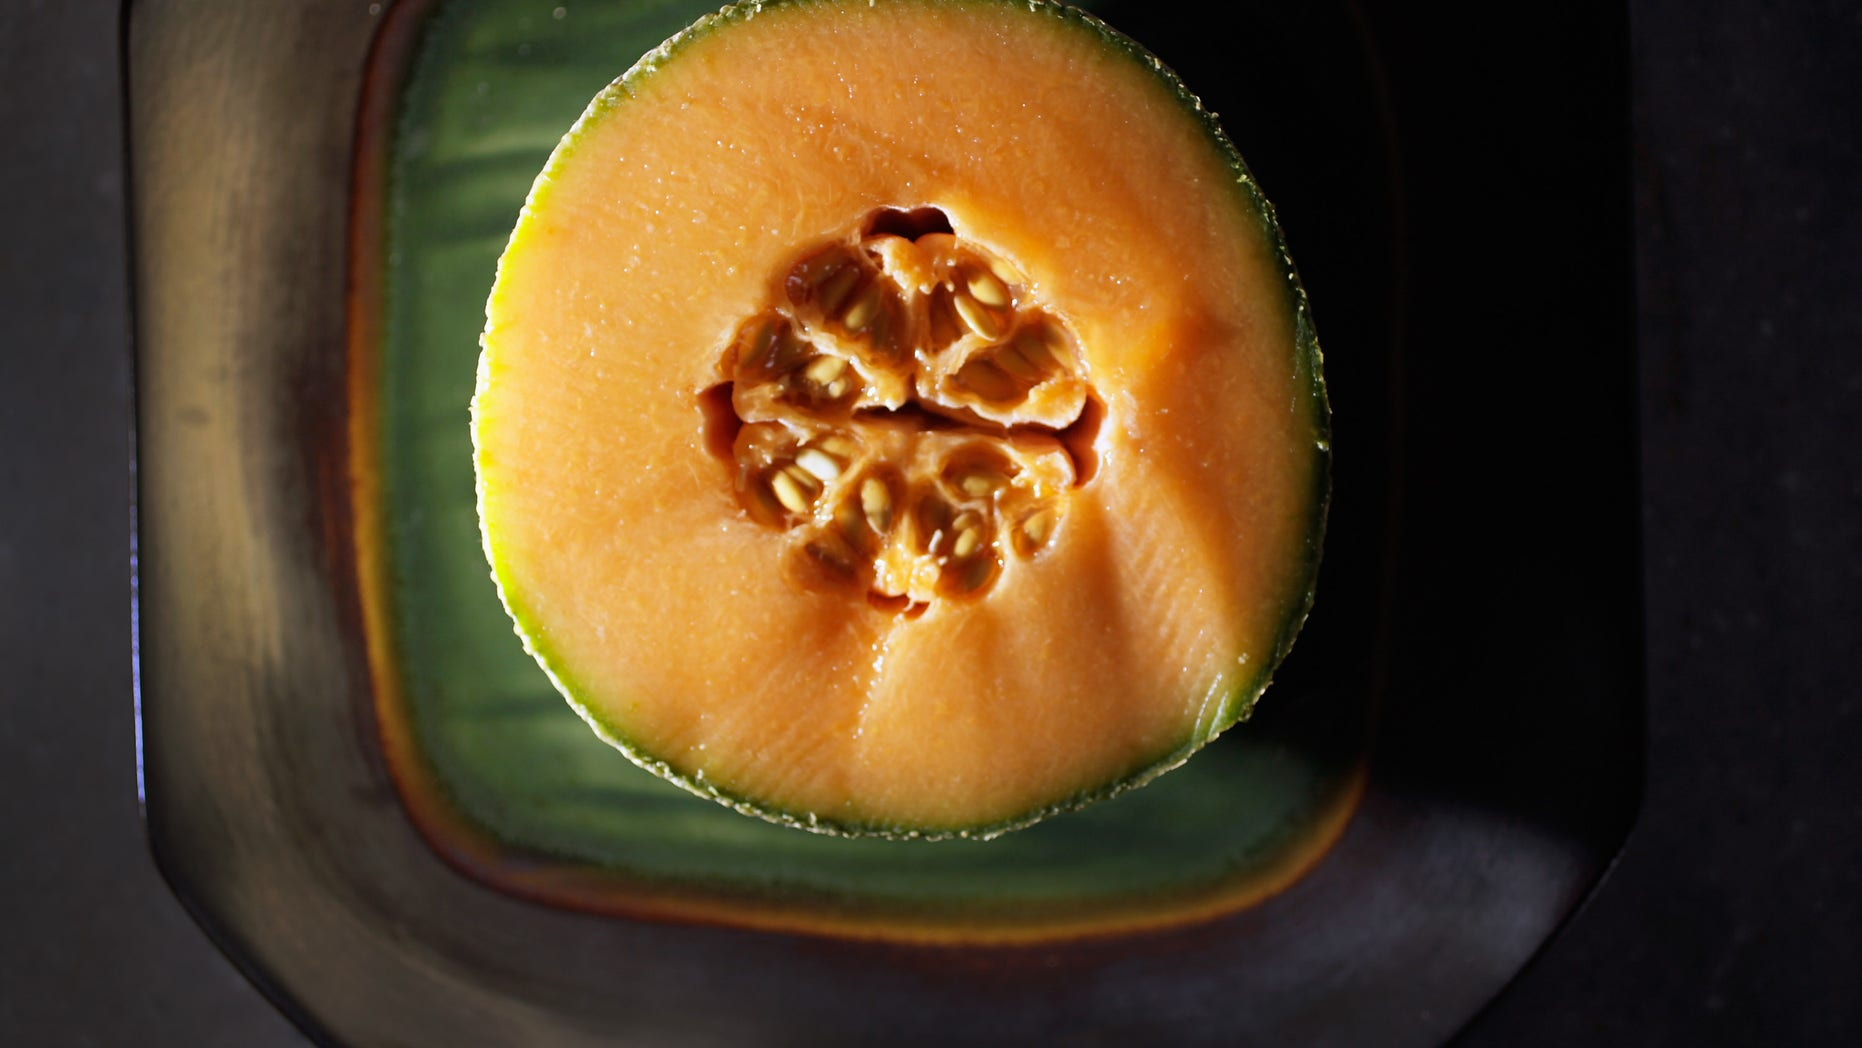 Cantaloupe Recall In Western New York Fox News Trader joe's is recalling it's cantaloupe slices due to possible salmonella outbreak. fox news